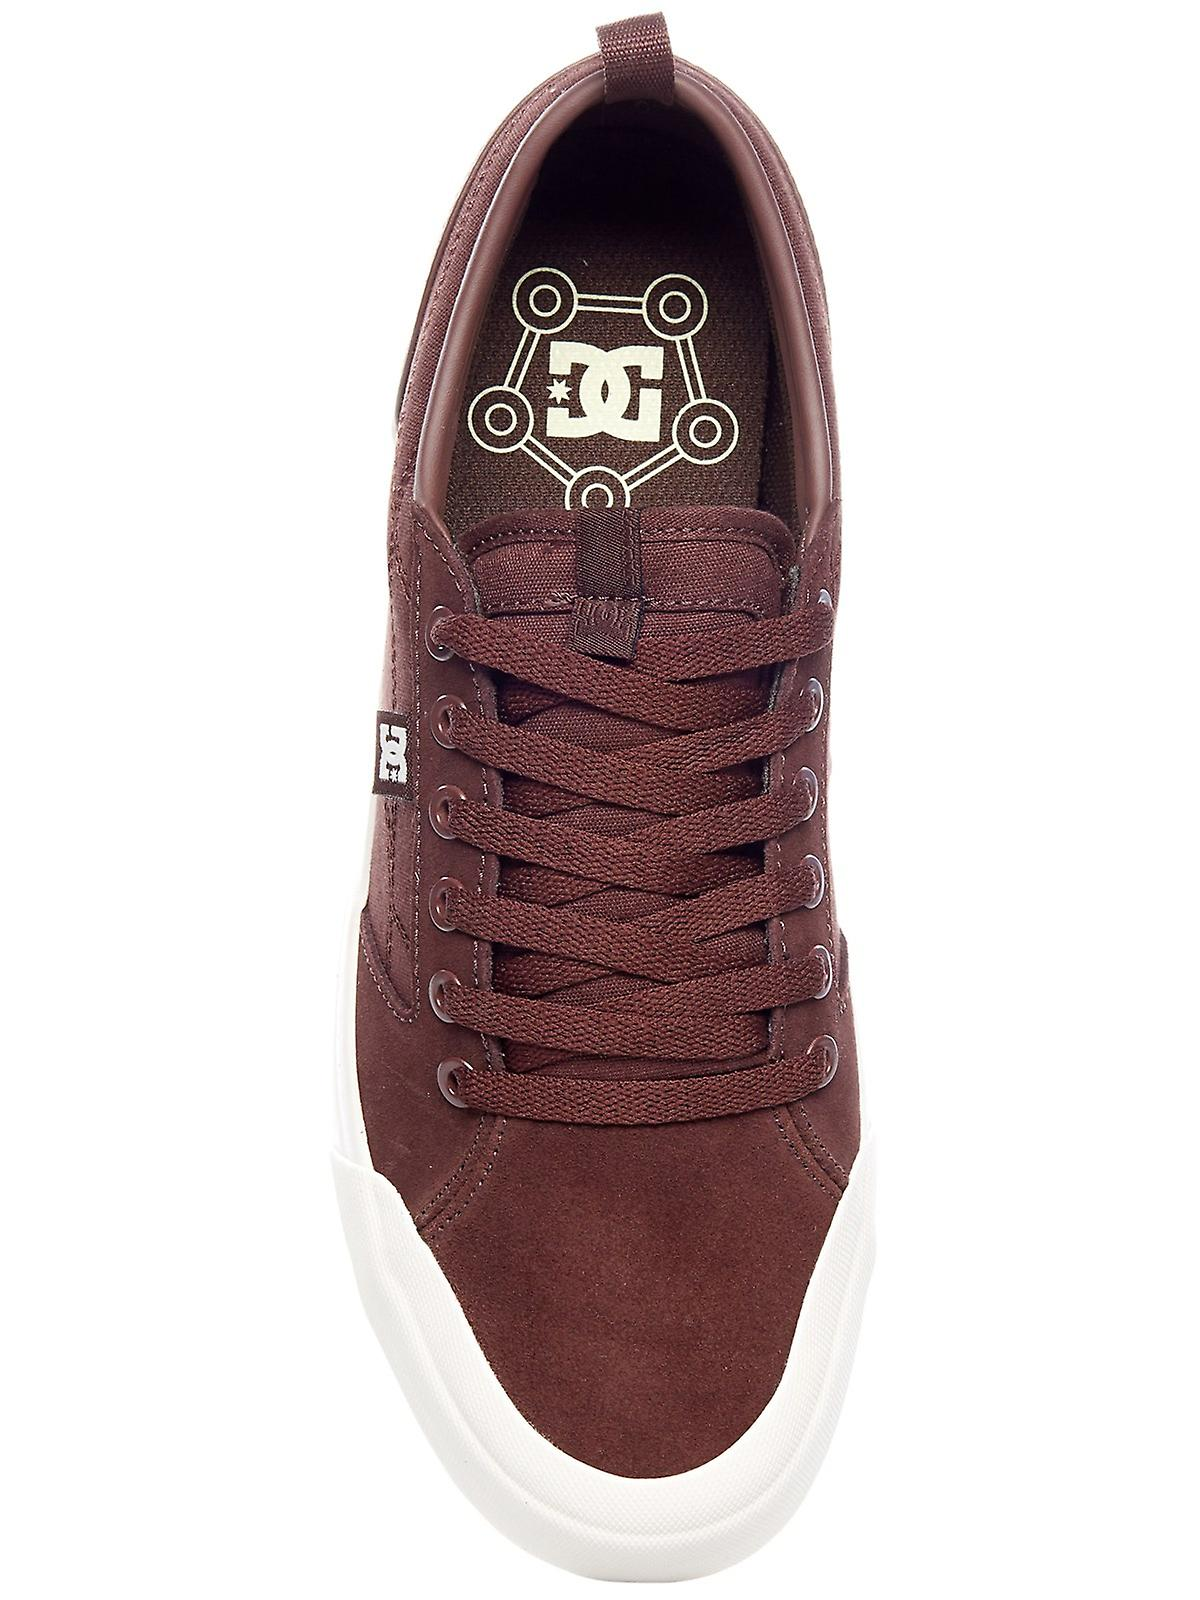 DC Evan Smith Signature Brown-Gum Signature Smith Series Shoe 5f20c1